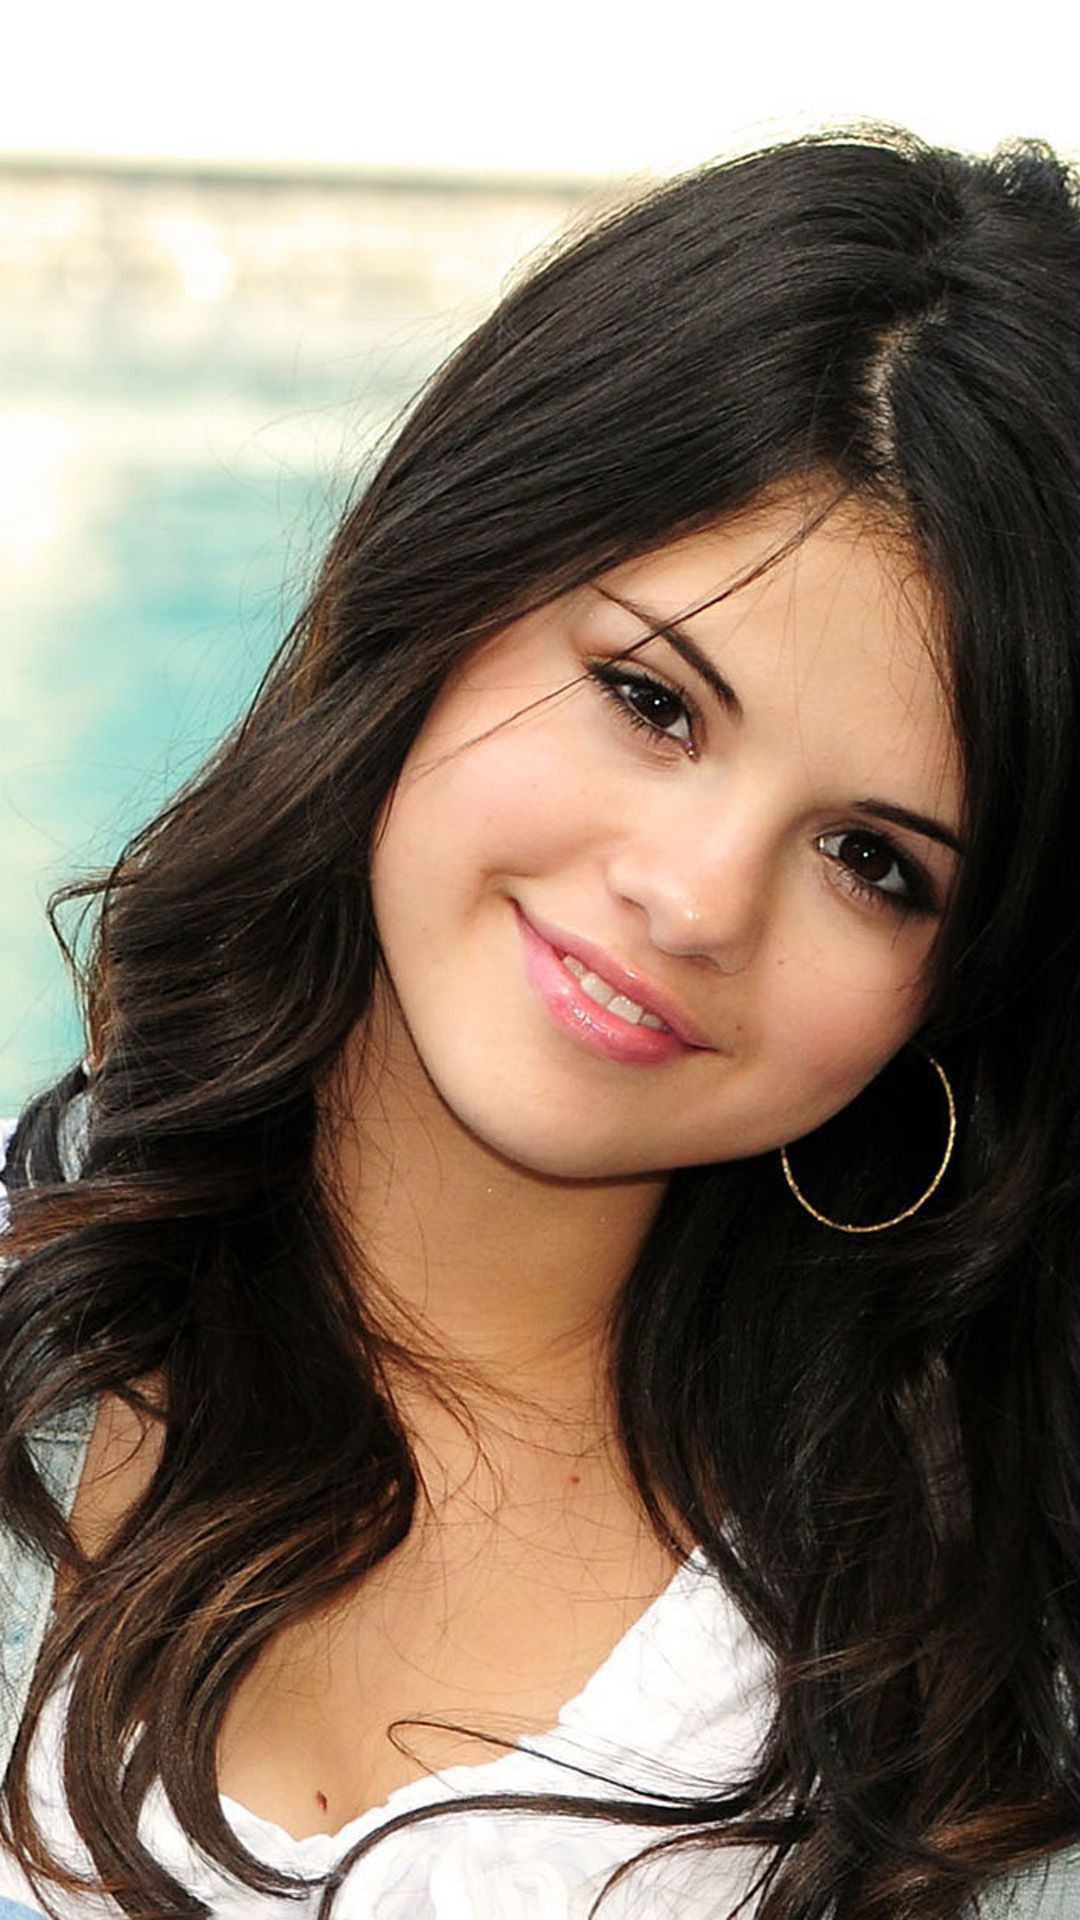 Cute Girl Wallpaper With Smile Selena Gomez Iphone Wallpaper 80 Images